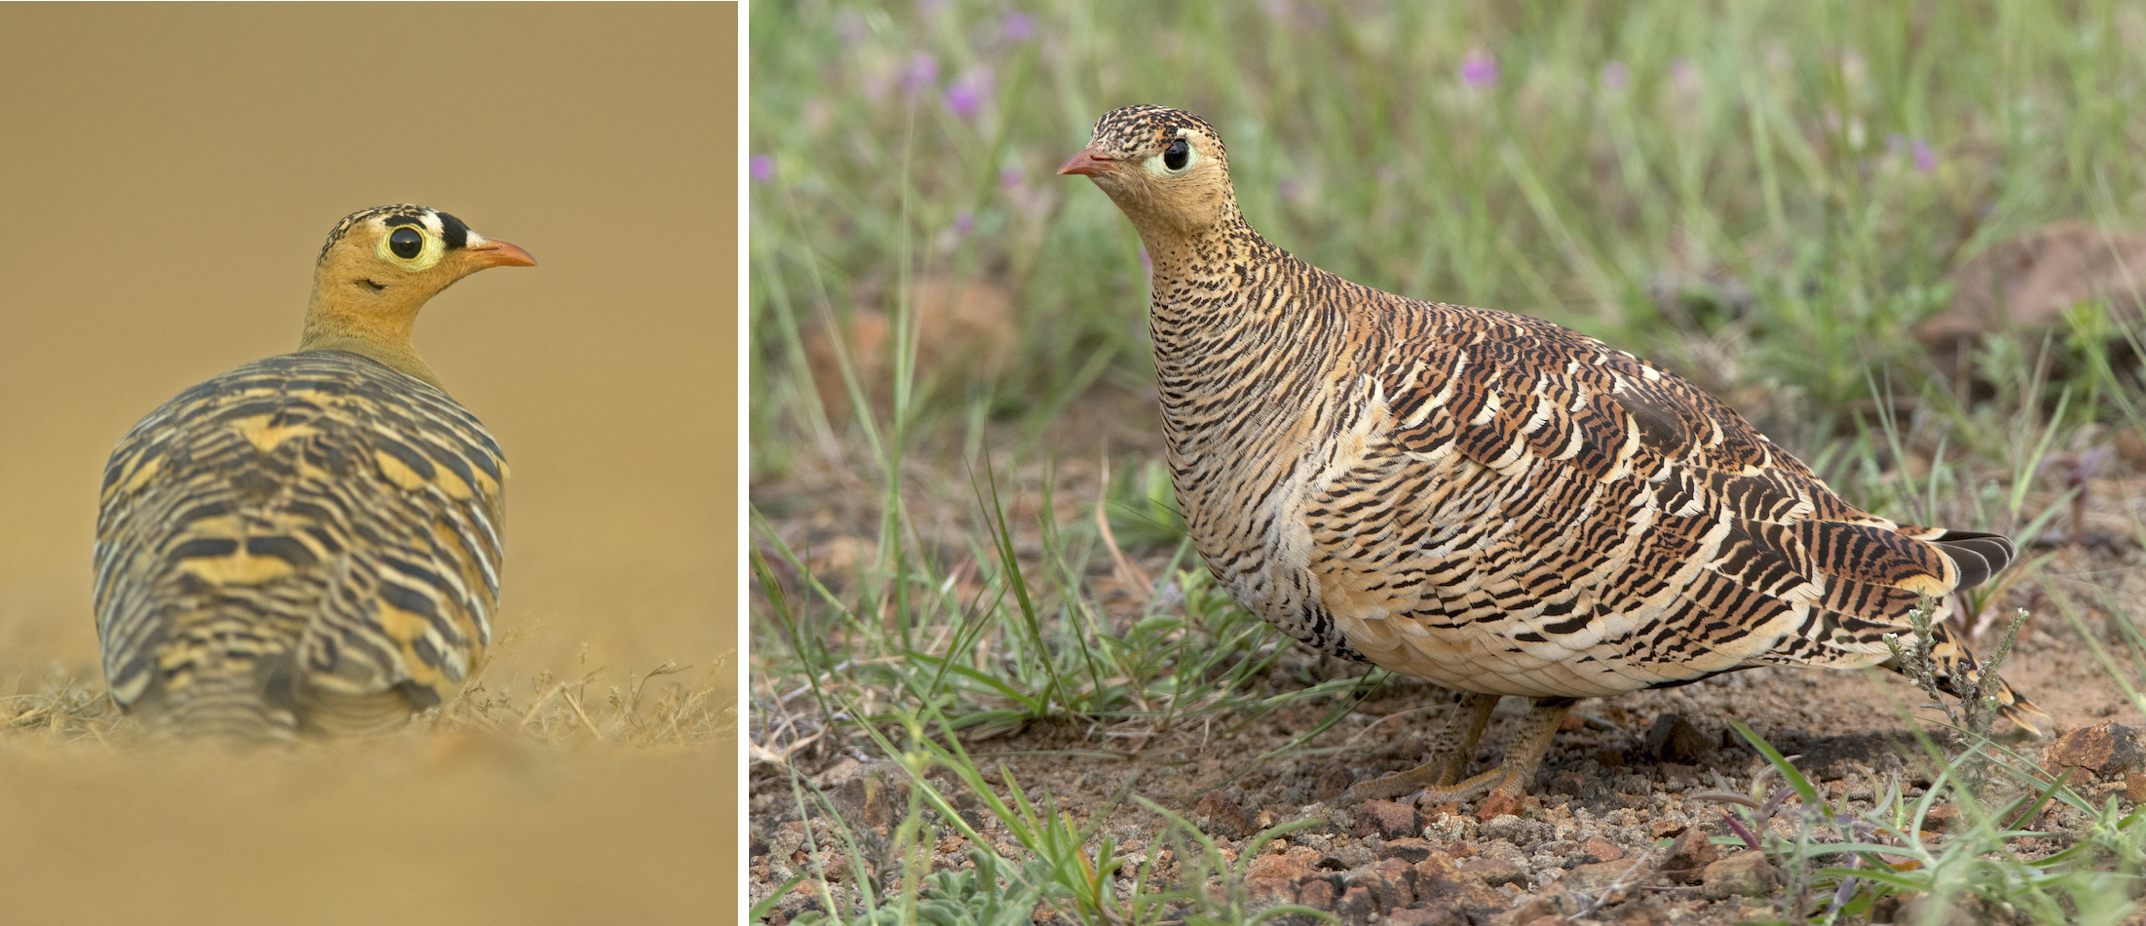 Painted sandgrouses are monogamous, usually gathering in small groups of couples. They usually gather to drink water after dusk, keeping a low profile for most of the day. A male (left) and female (right) are seen here. Photo: Dhritiman Mukherjee (left), Mihir Godbole (right).